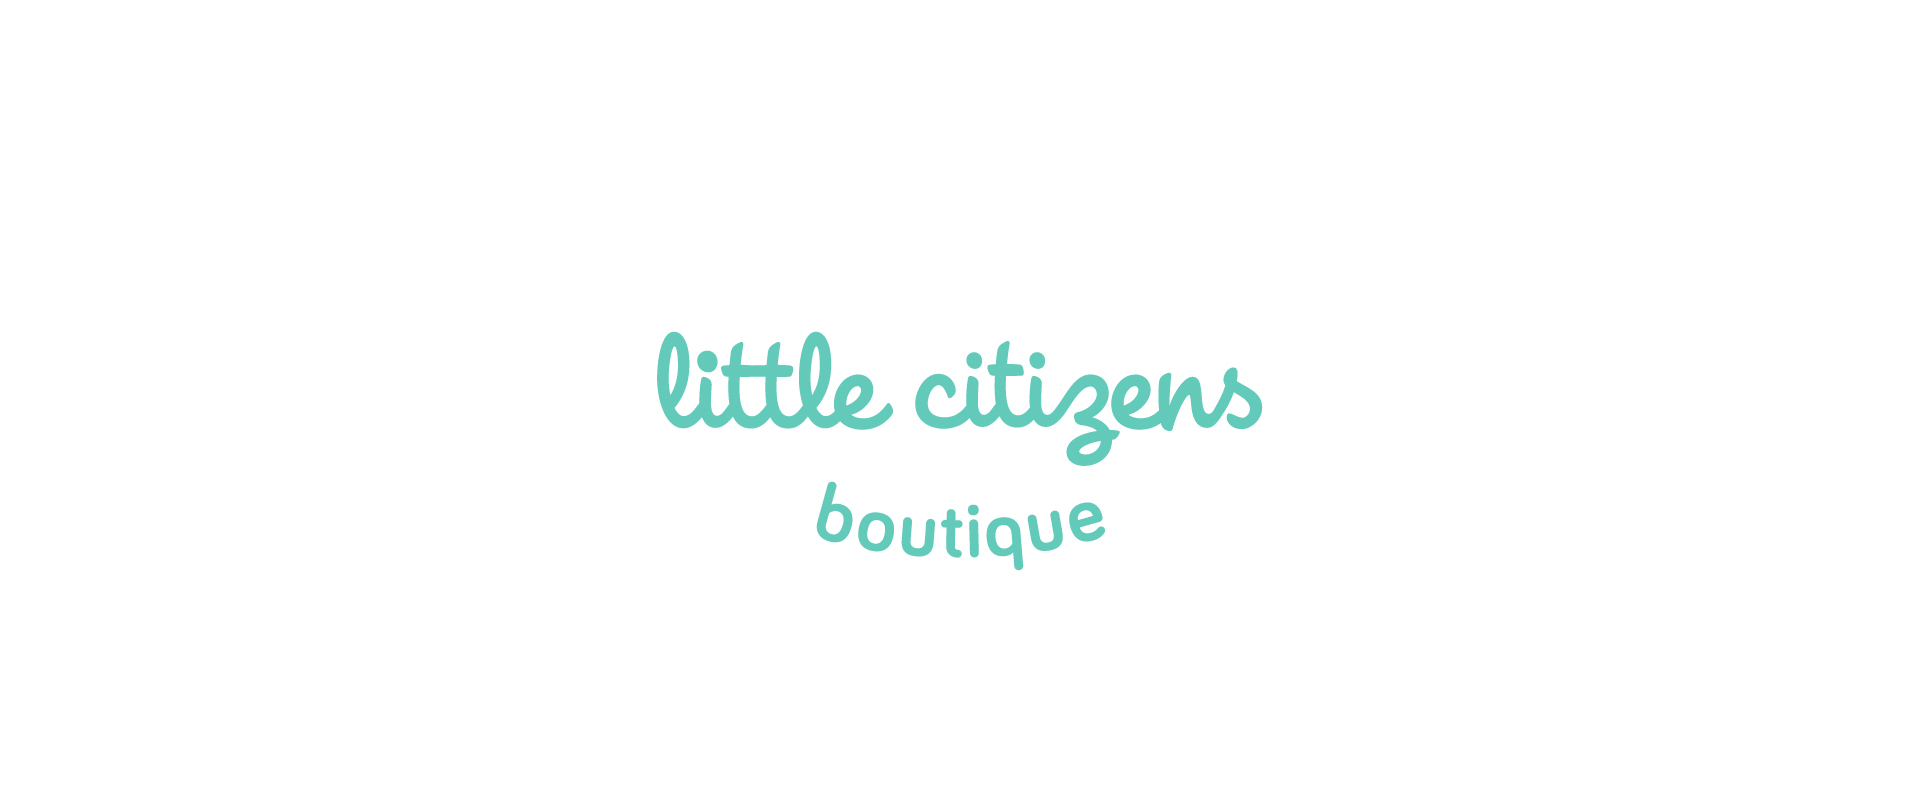 Little citizens boutique brand